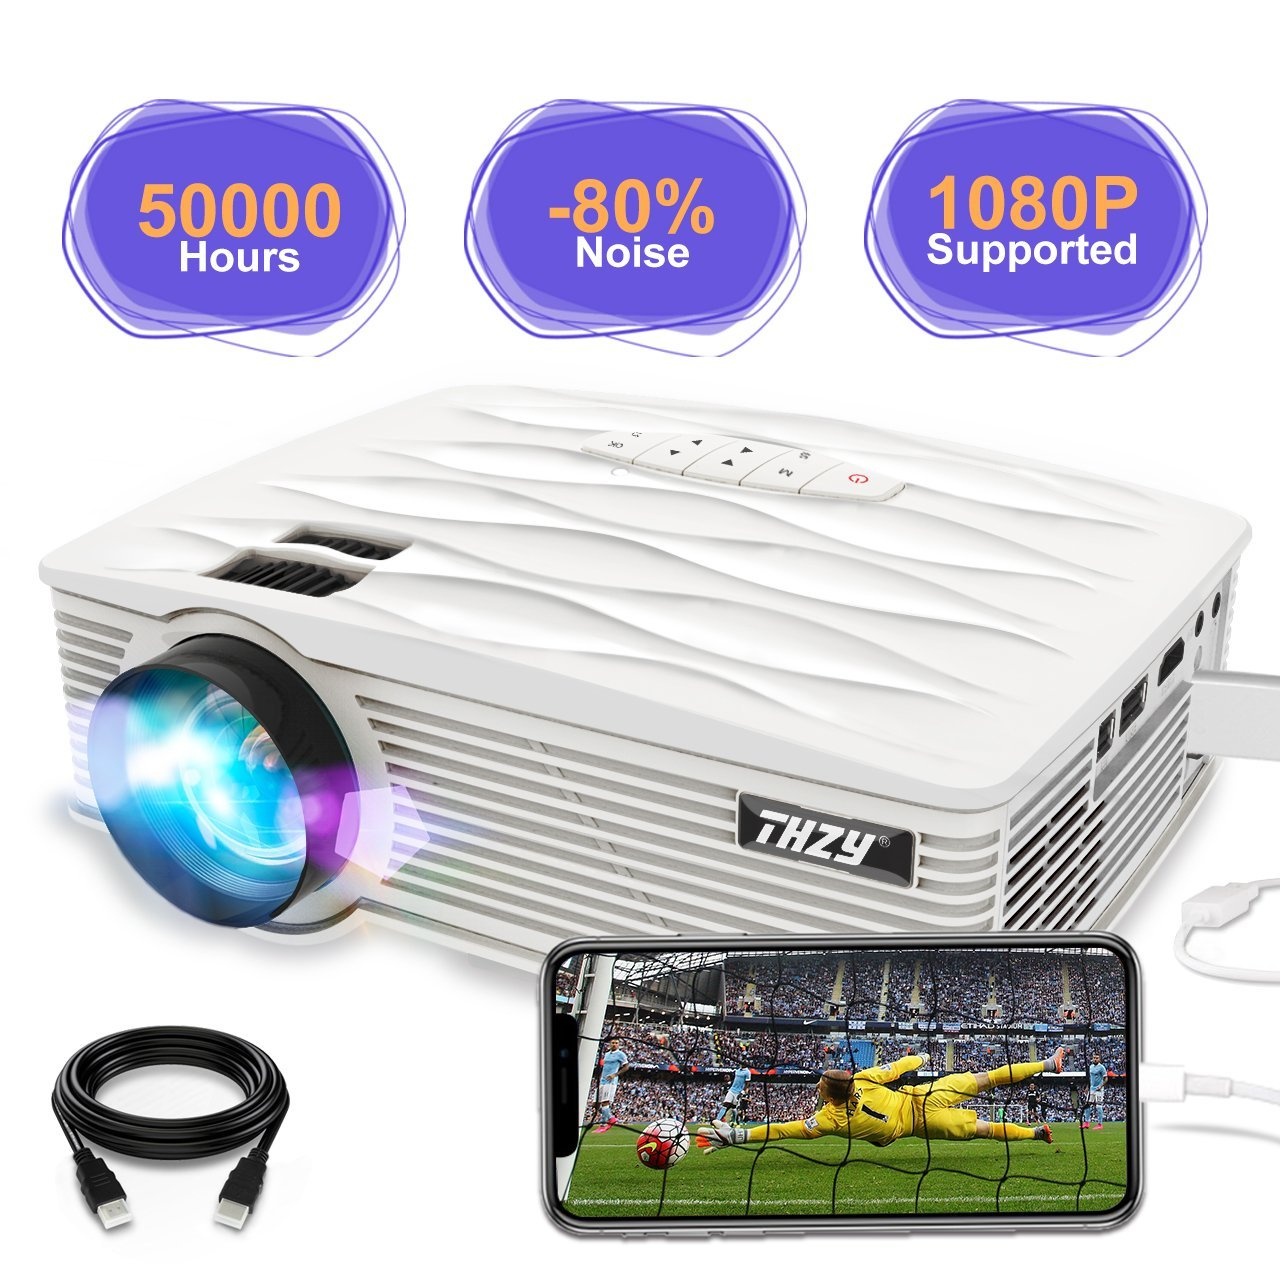 THZY Video Projector 2200 lumen Full HD LED Mini Portable Projectors 1080P Supported Compatible with Amazon Fire TV Stick, HDMI, VGA, USB, AV, SD Card, iPhone, PS4 for Home Theater Entertainment